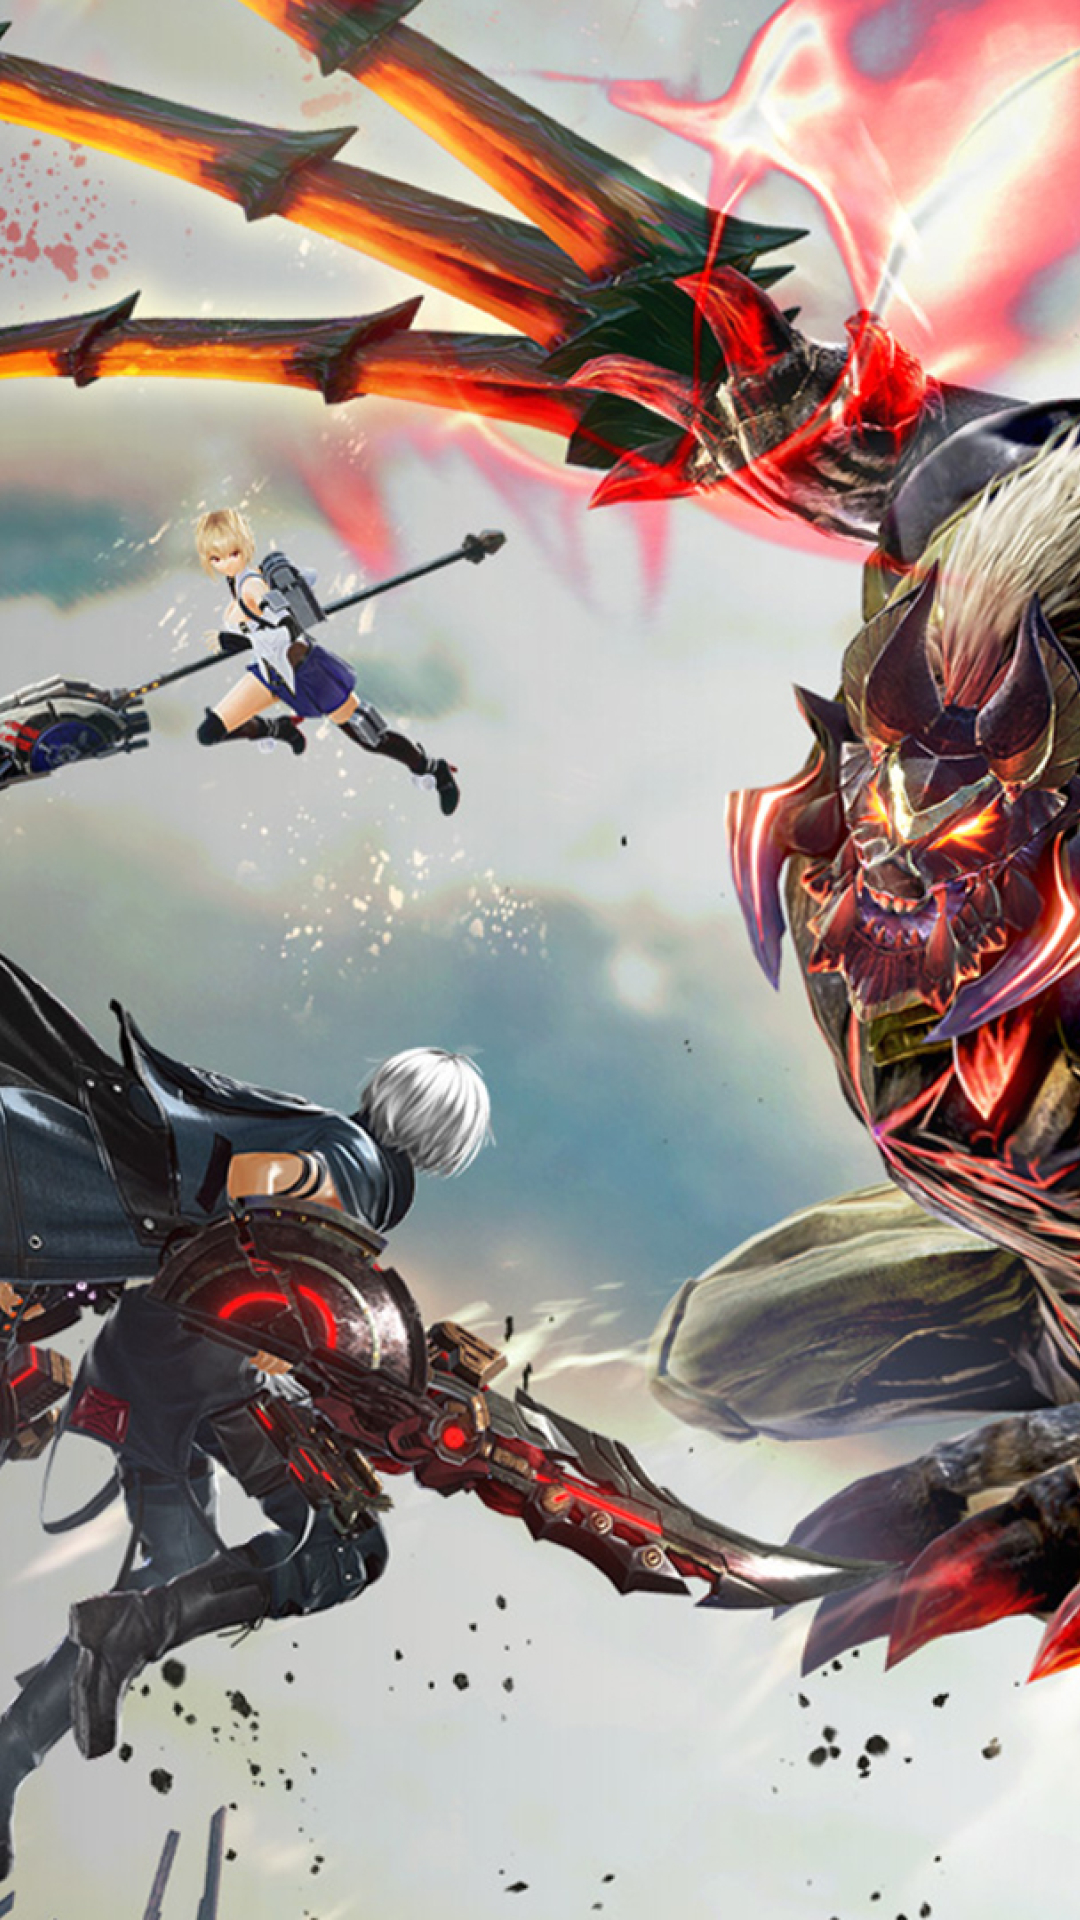 30+ God Eater Wallpaper Hd Gif